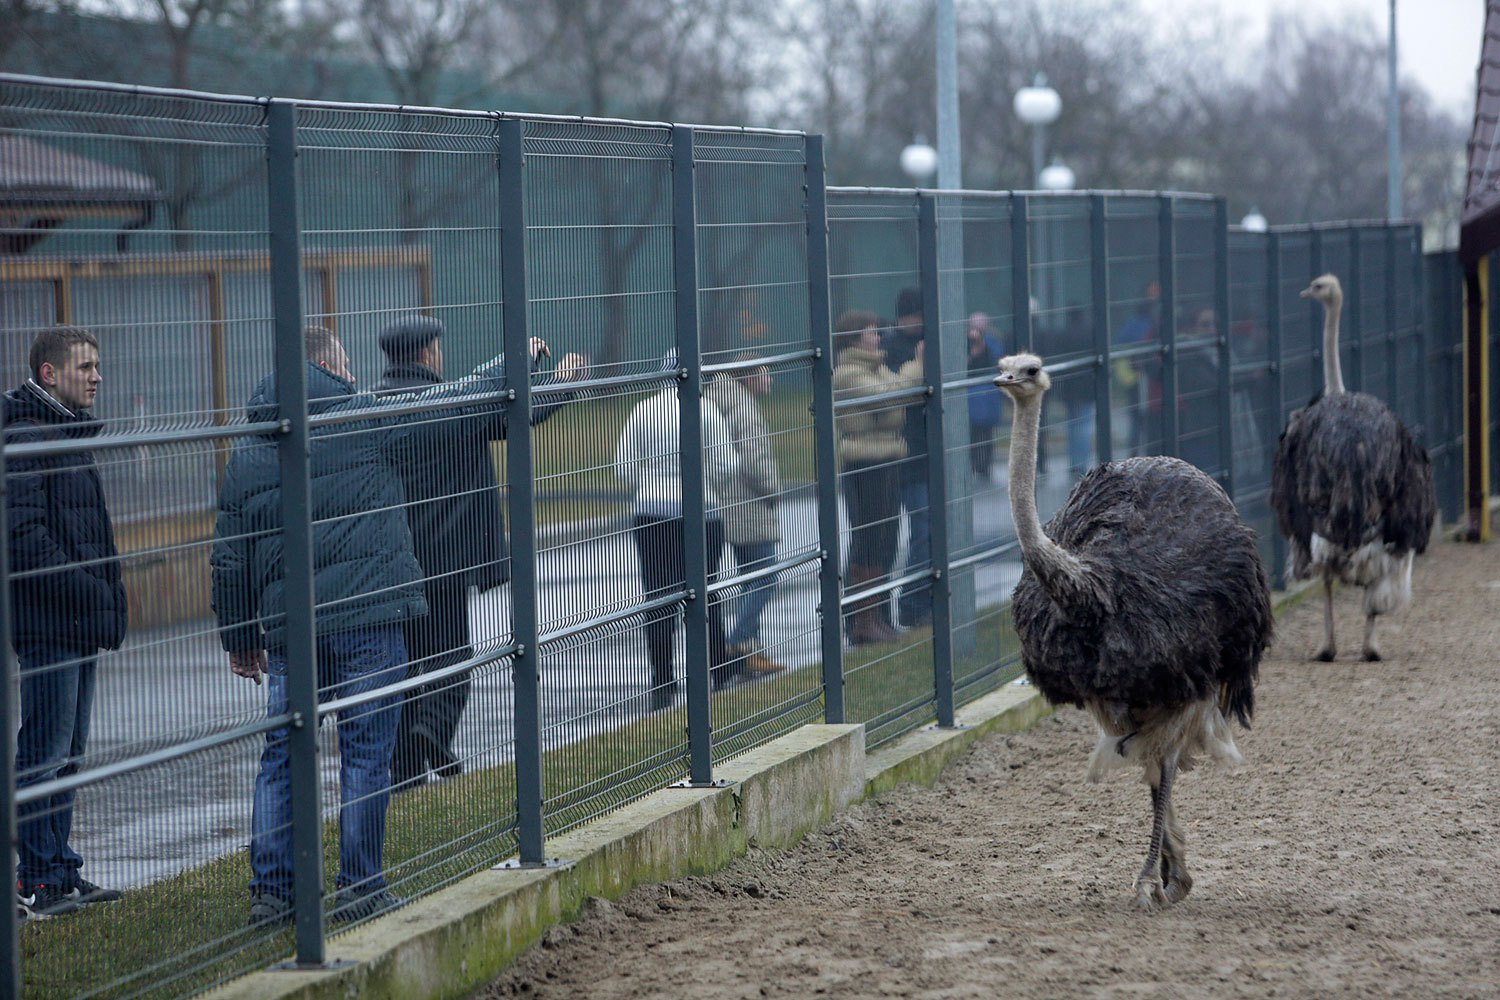 Anti-government protesters and journalists look at ostriches kept within an enclosure on the grounds of the Mezhyhirya residence of Ukraine's President Viktor Yanukovich.